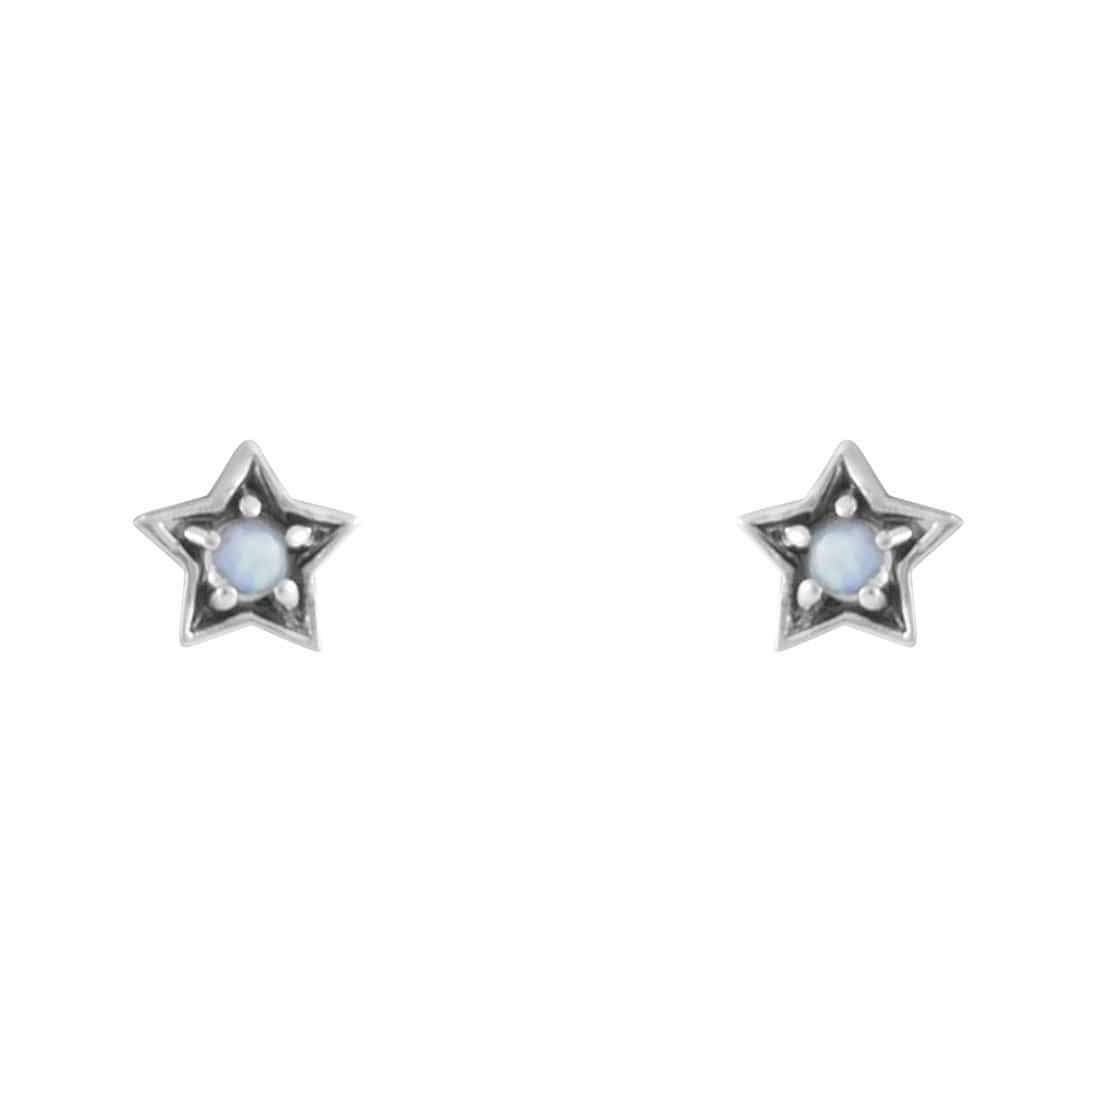 Midsummer Star Earrings Mystic Light Moonstone Studs